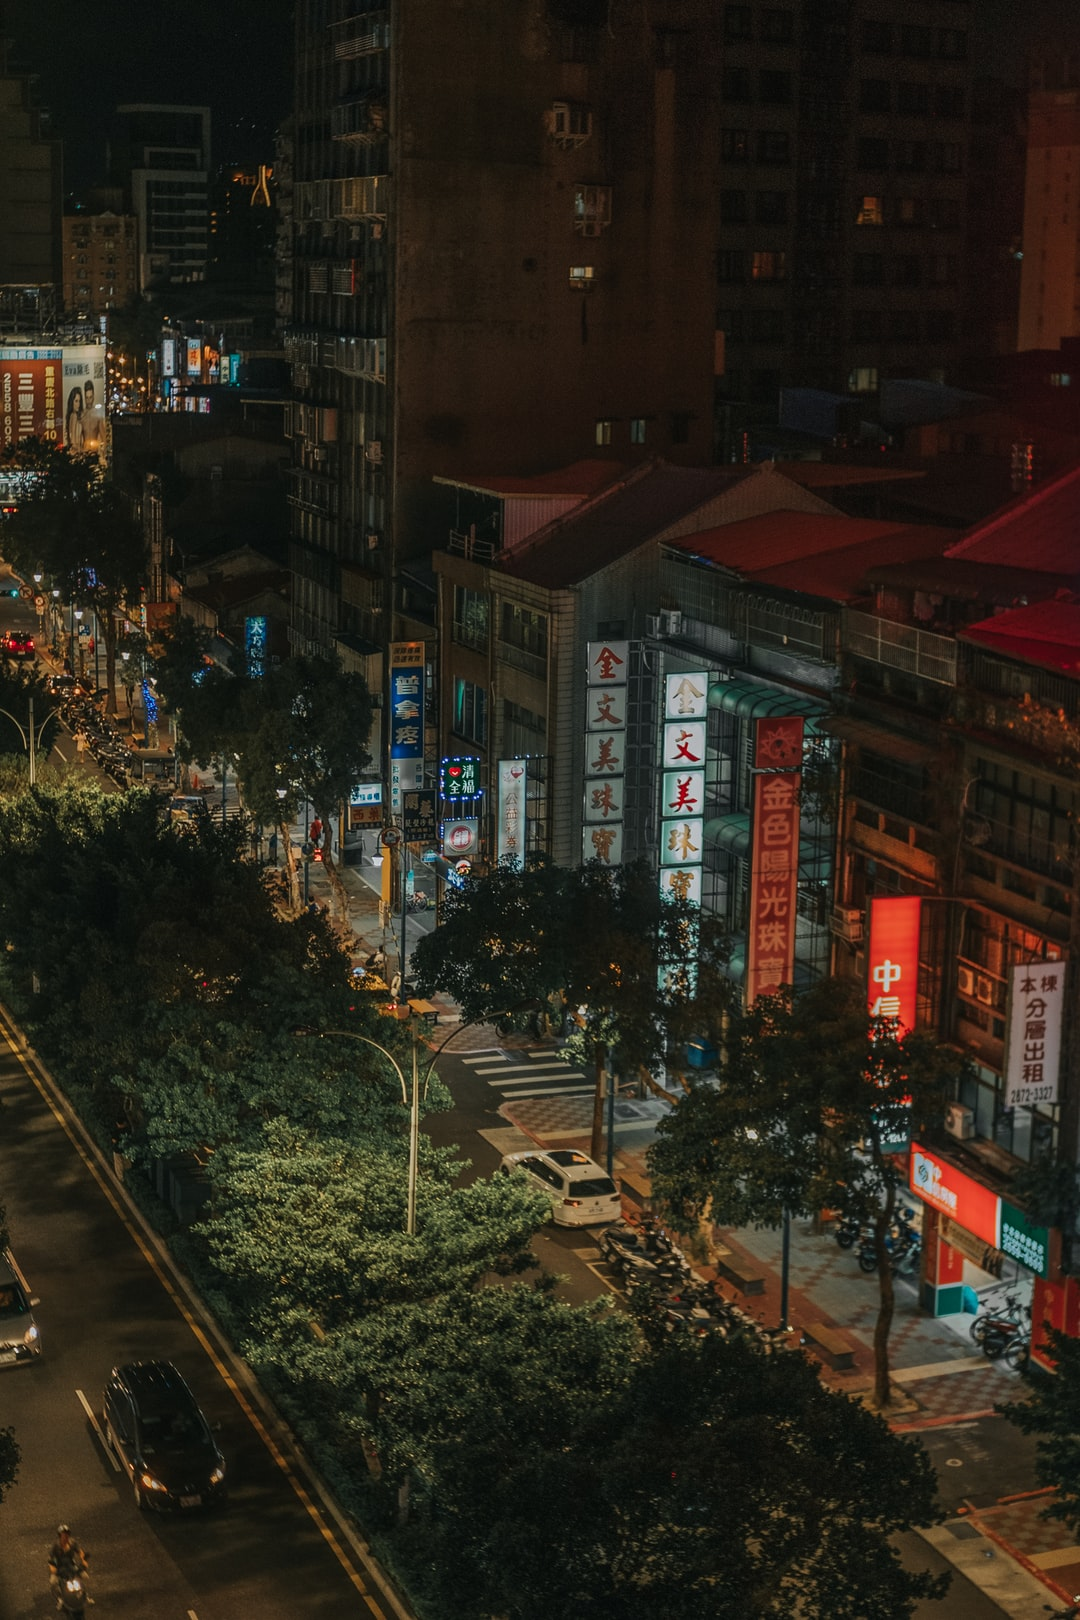 An extended view of our room with a view. This shot shows how Taipei lives at night. It's a city I would definitely come back to.